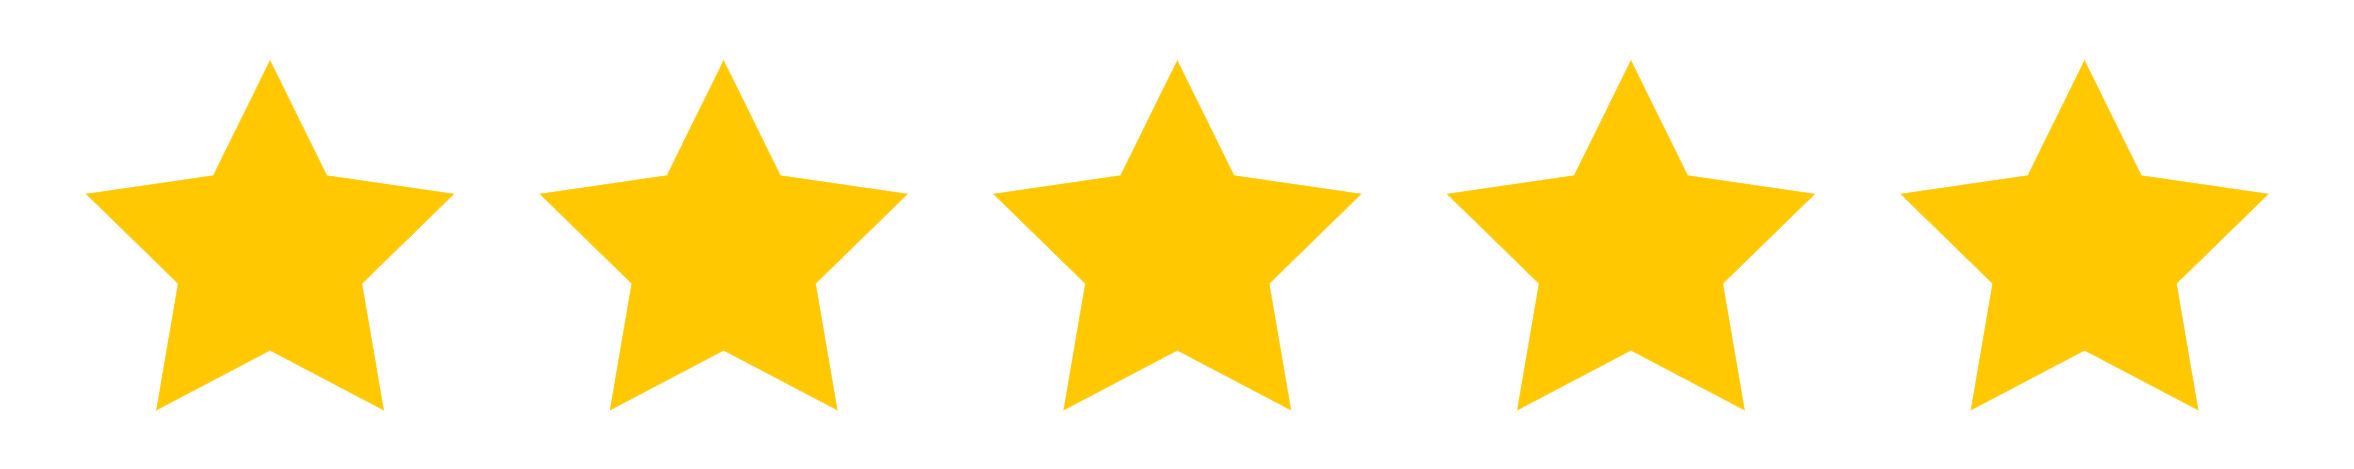 Reviews star rating from Diane C. for A-1 Self Storage in Lakeside, California